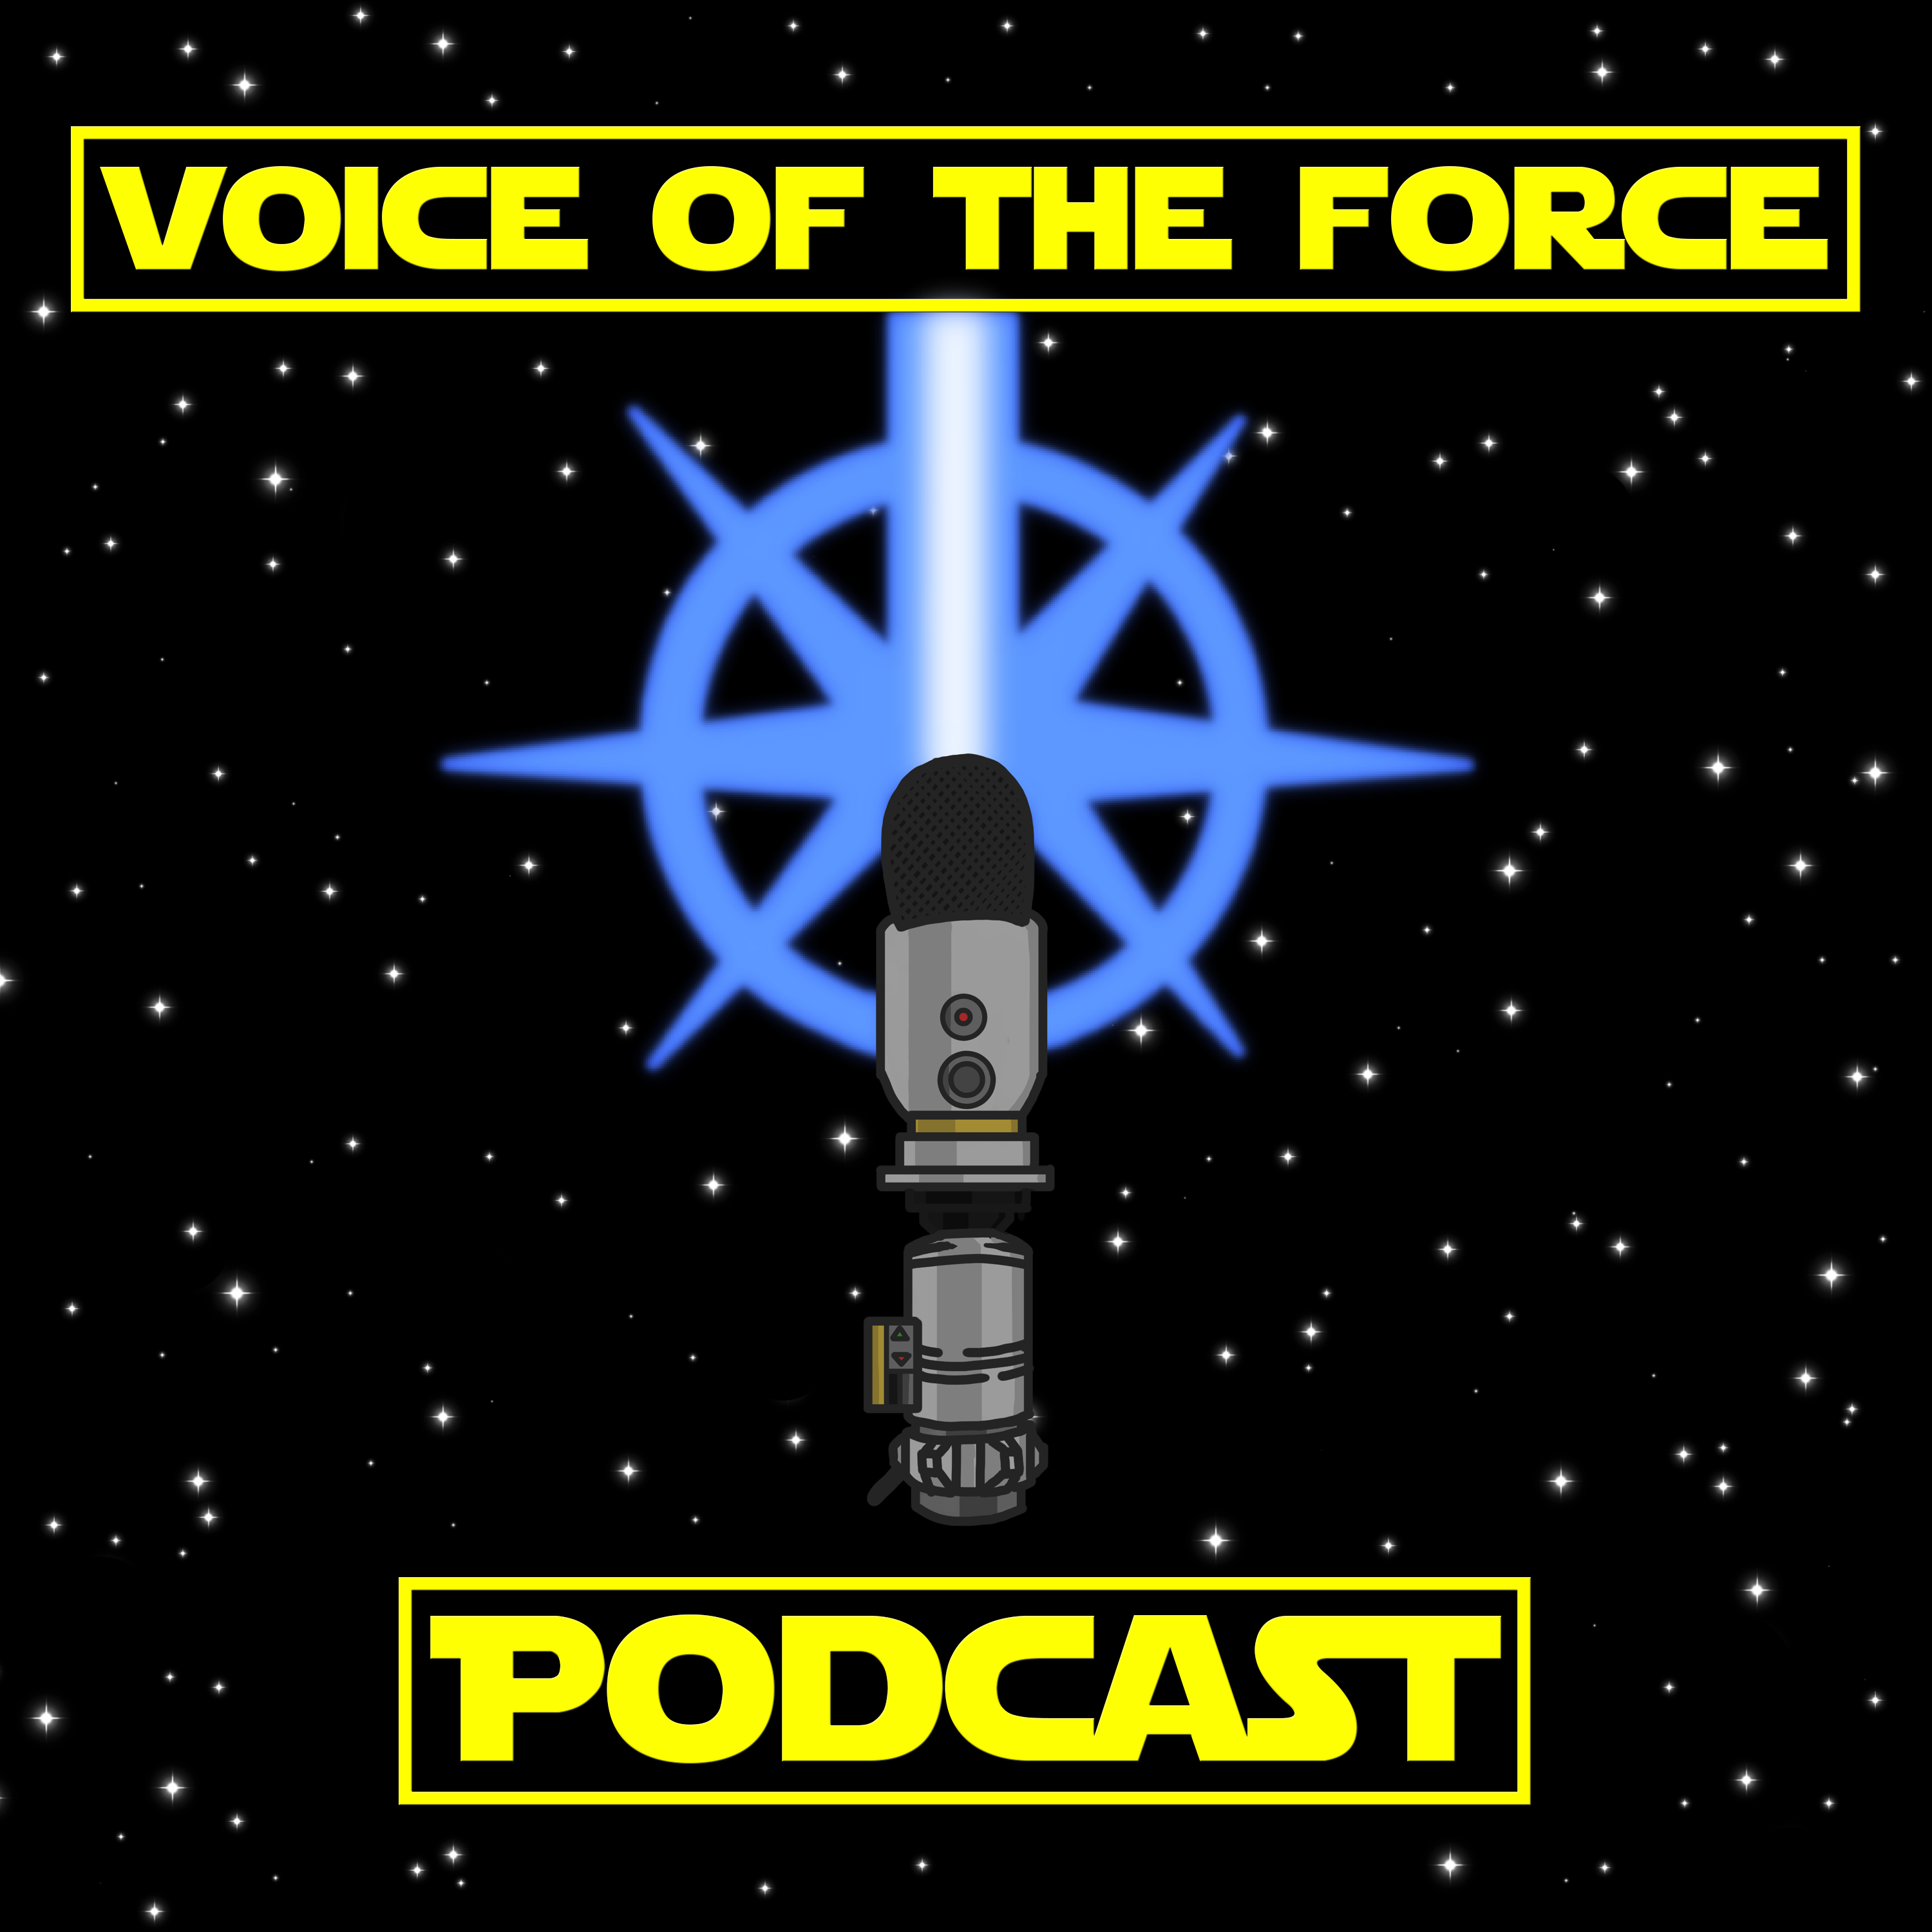 Voice of the Force Podcast